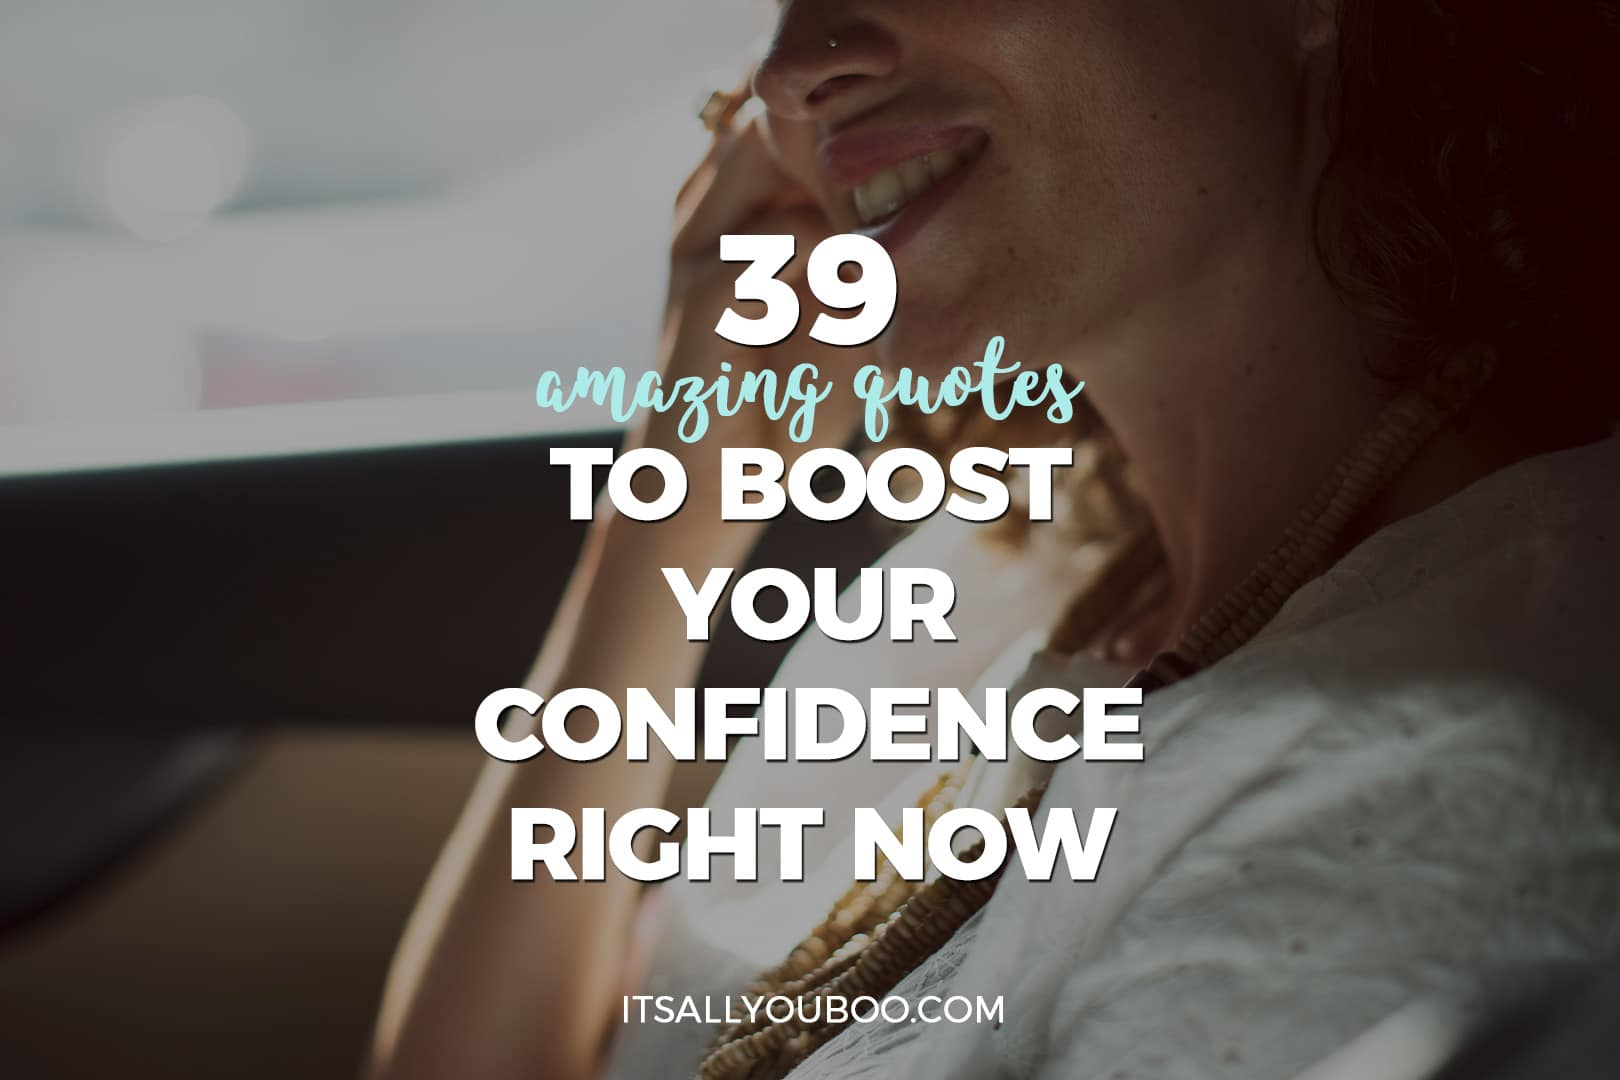 Amazing Quotes 39 Amazing Quotes To Boost Your Confidence Right Now  It's All